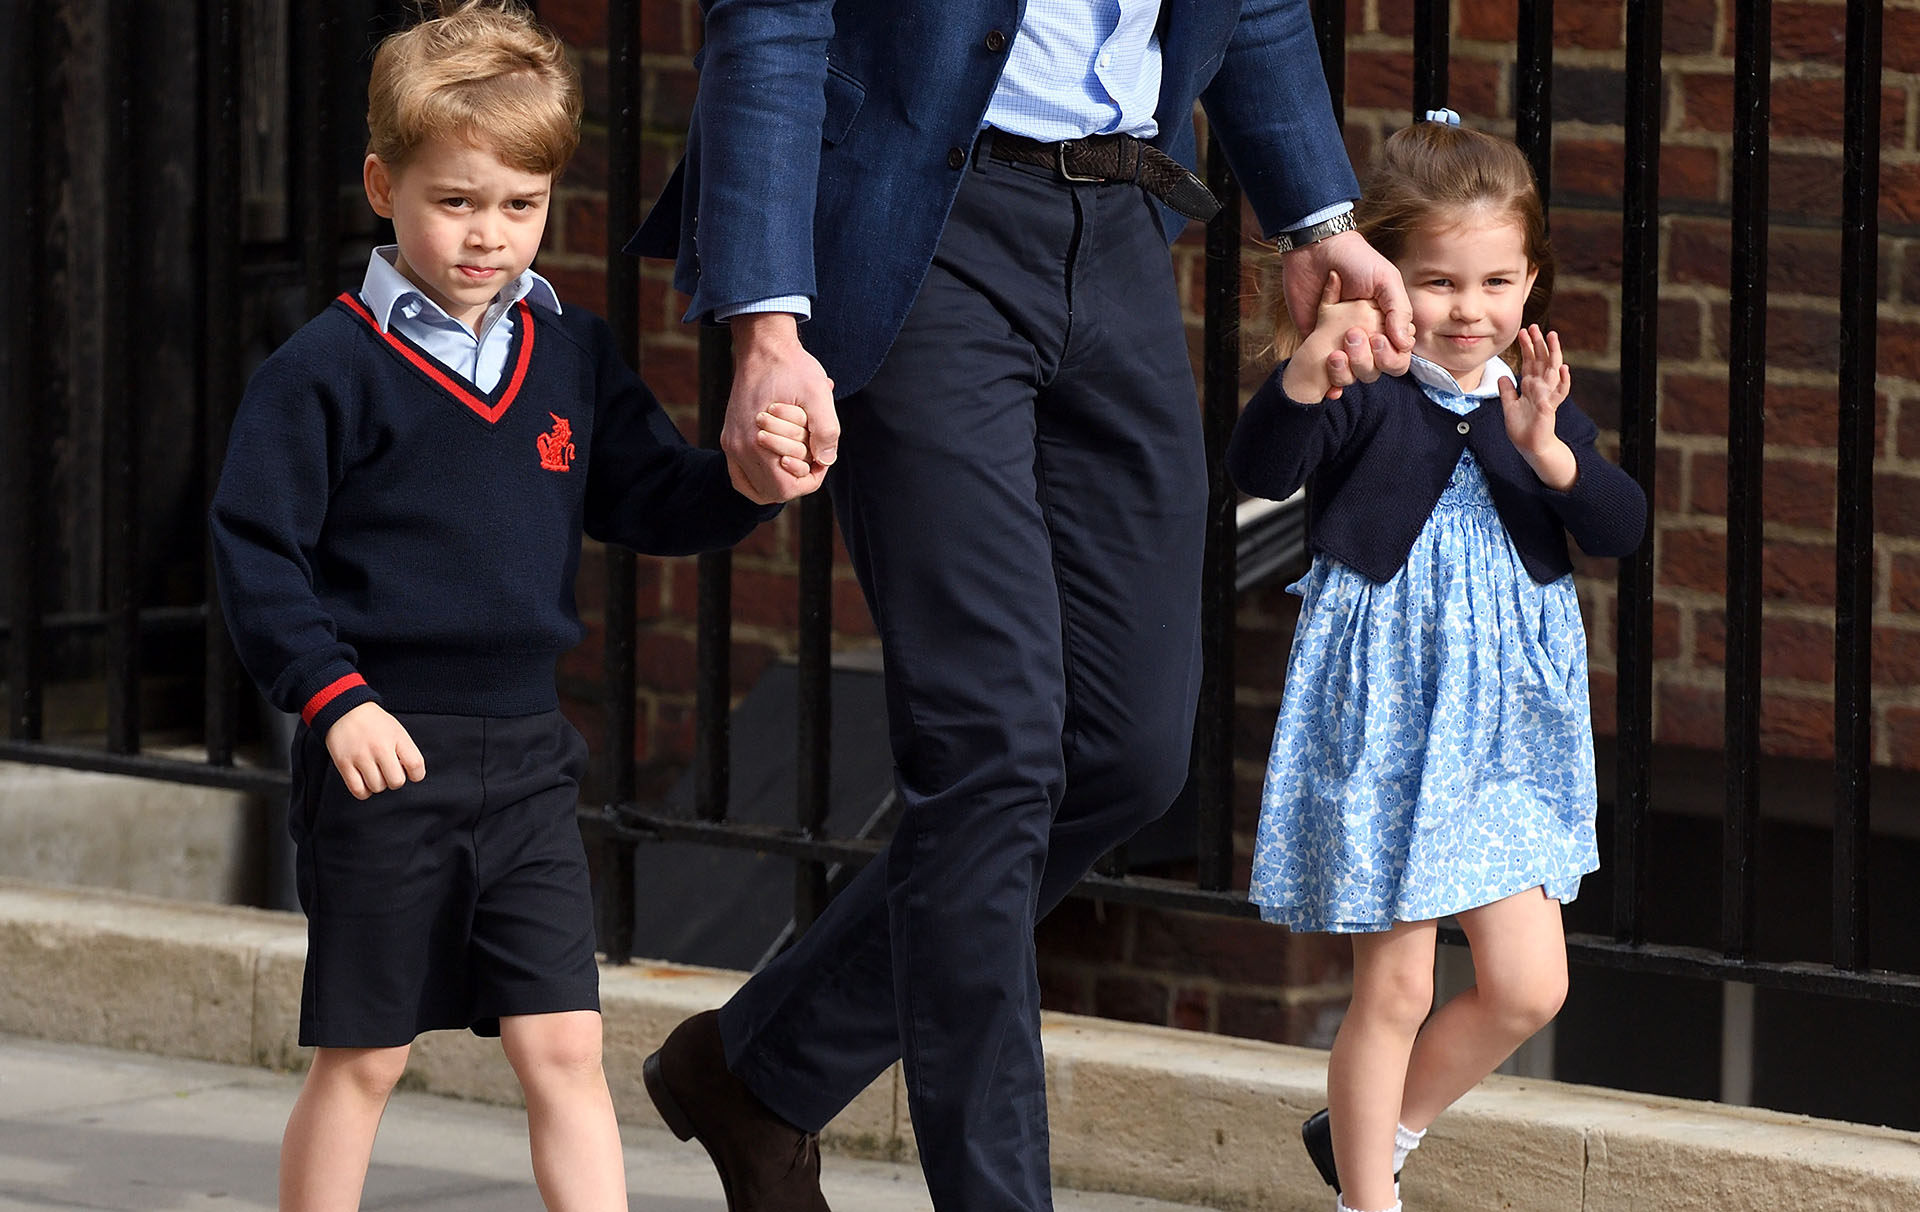 Prince George and Princess Charlotte etiquette lessons